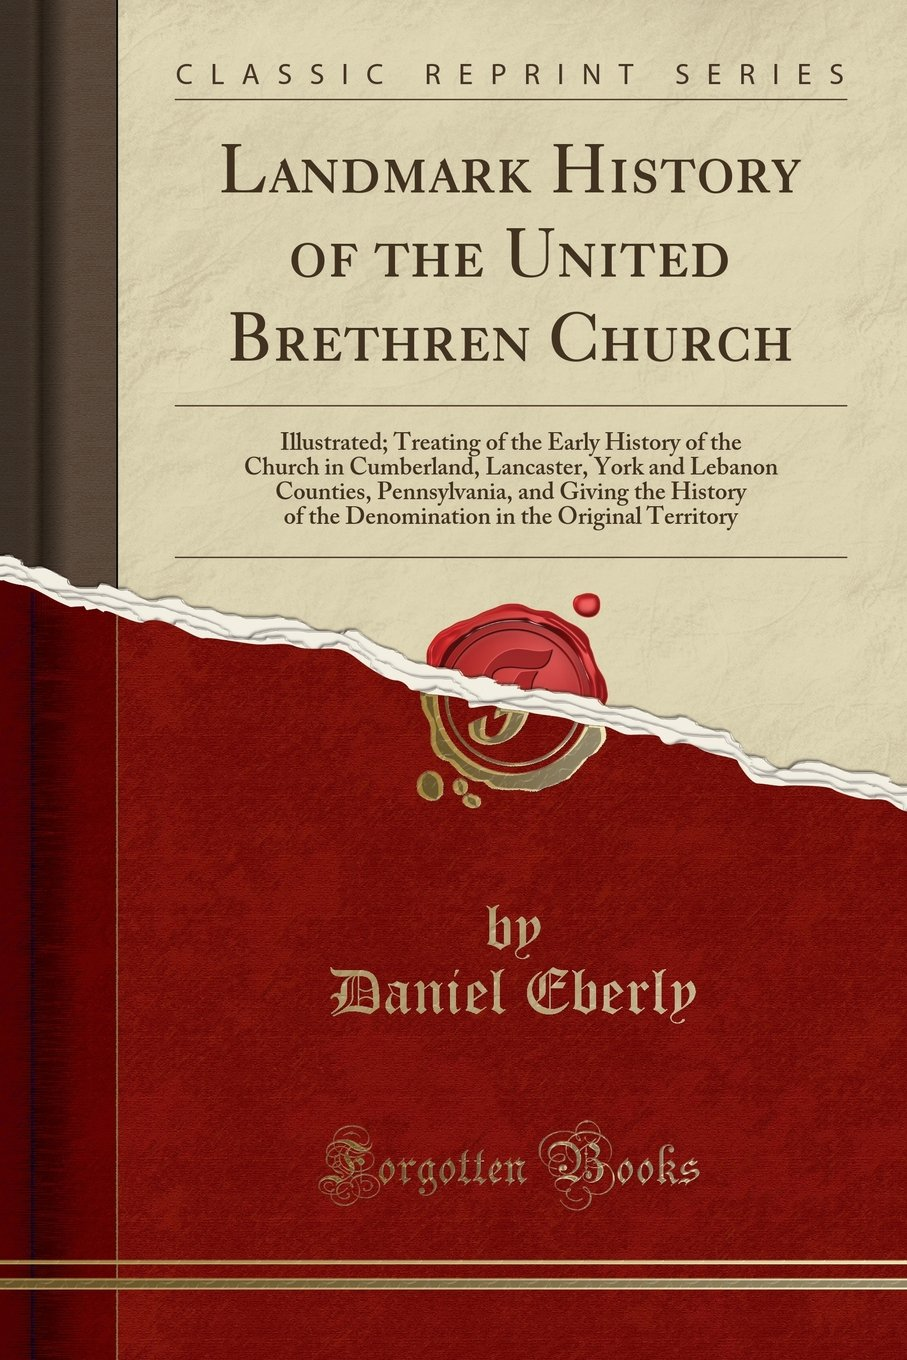 Landmark History of the United Brethren Church: Illustrated; Treating of the Early History of the Church in Cumberland, Lancaster, York and Lebanon ... of the Denomination in the Original Territory pdf